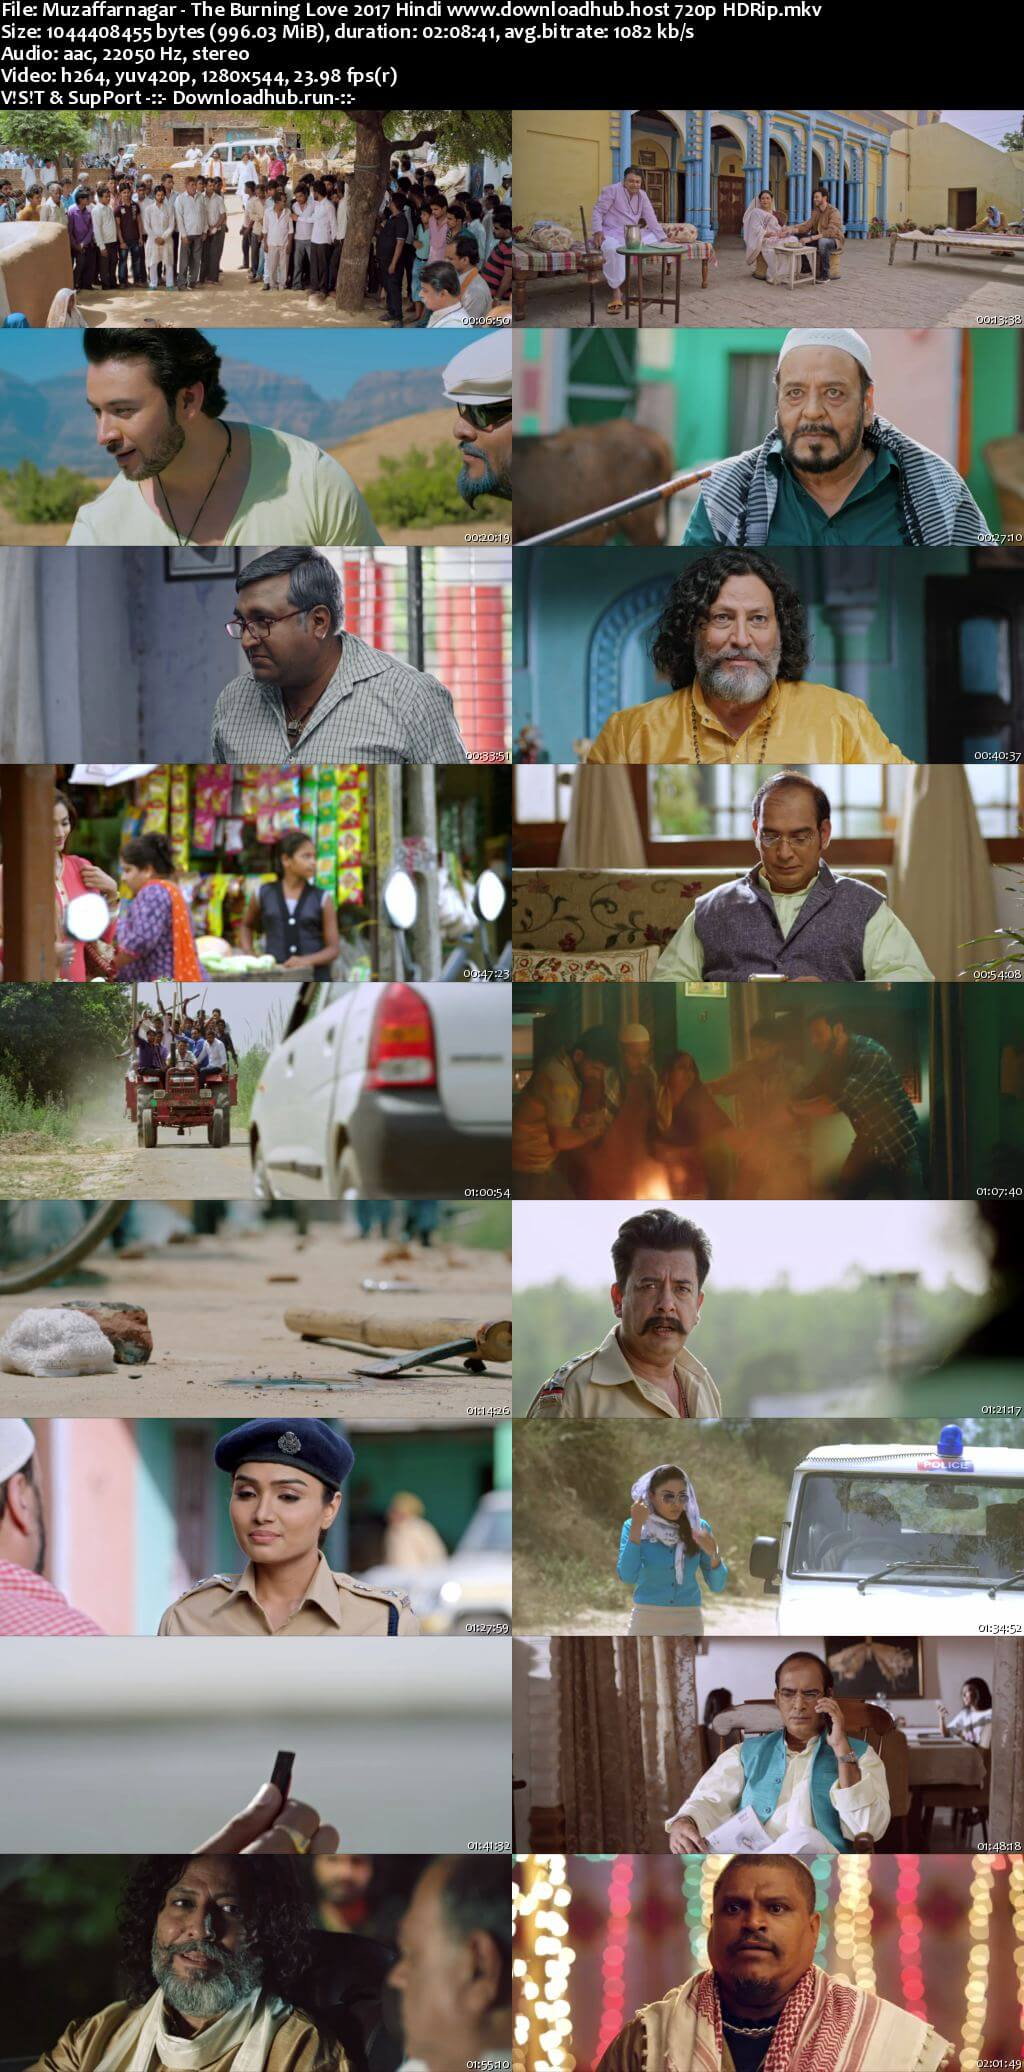 Muzaffarnagar 2013 2017 Hindi 720p HDRip x264